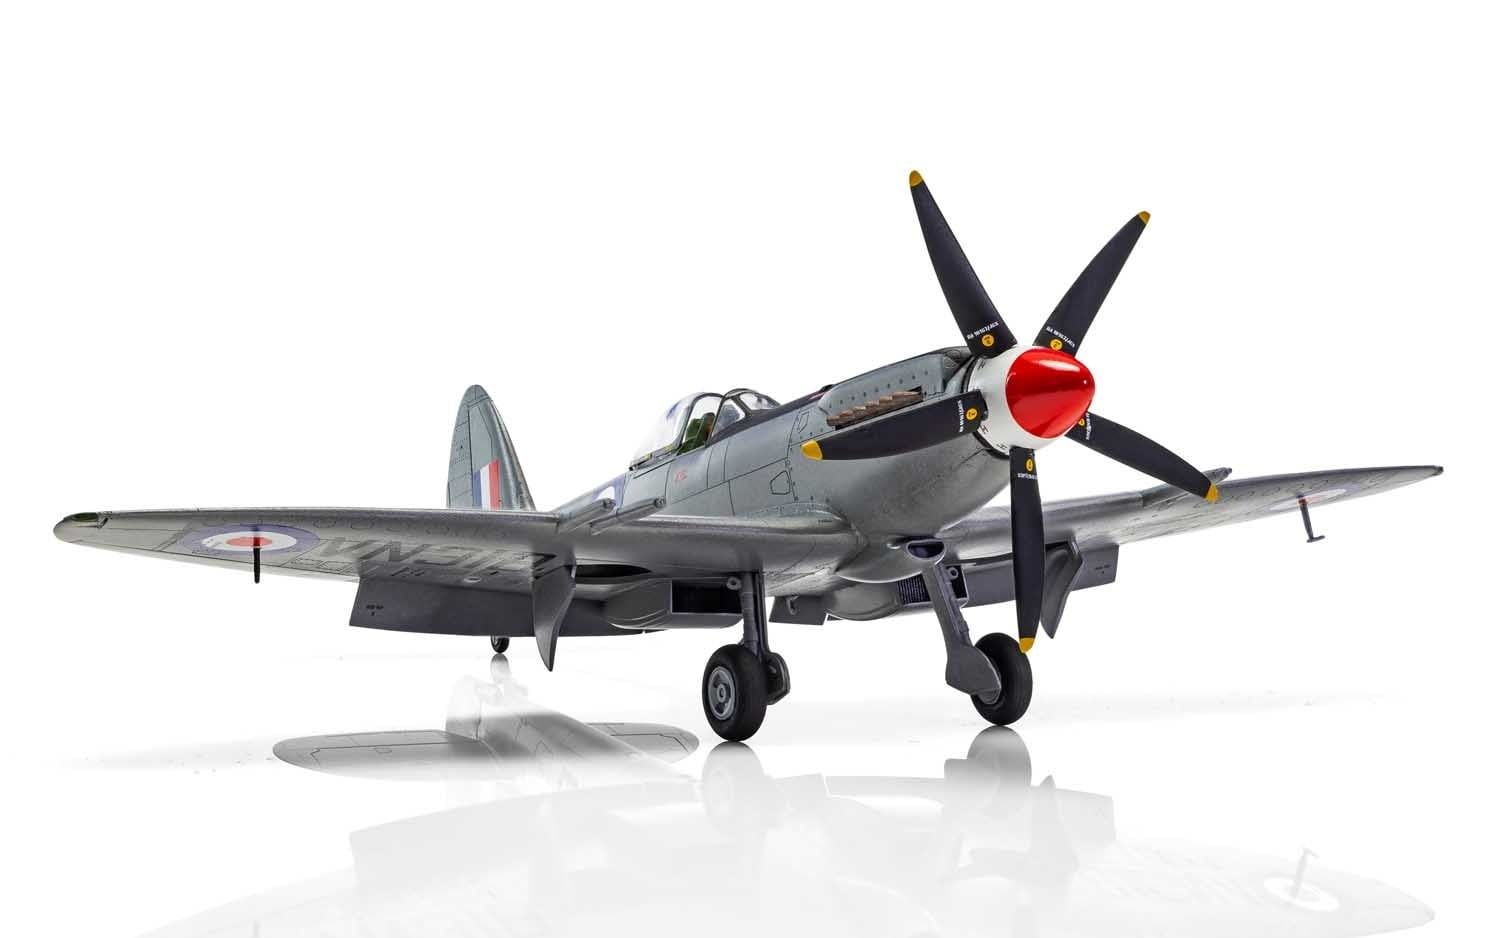 Airfix Supermarine Spitfire Mk22 24  1:48 Scale Plastic Model Kit